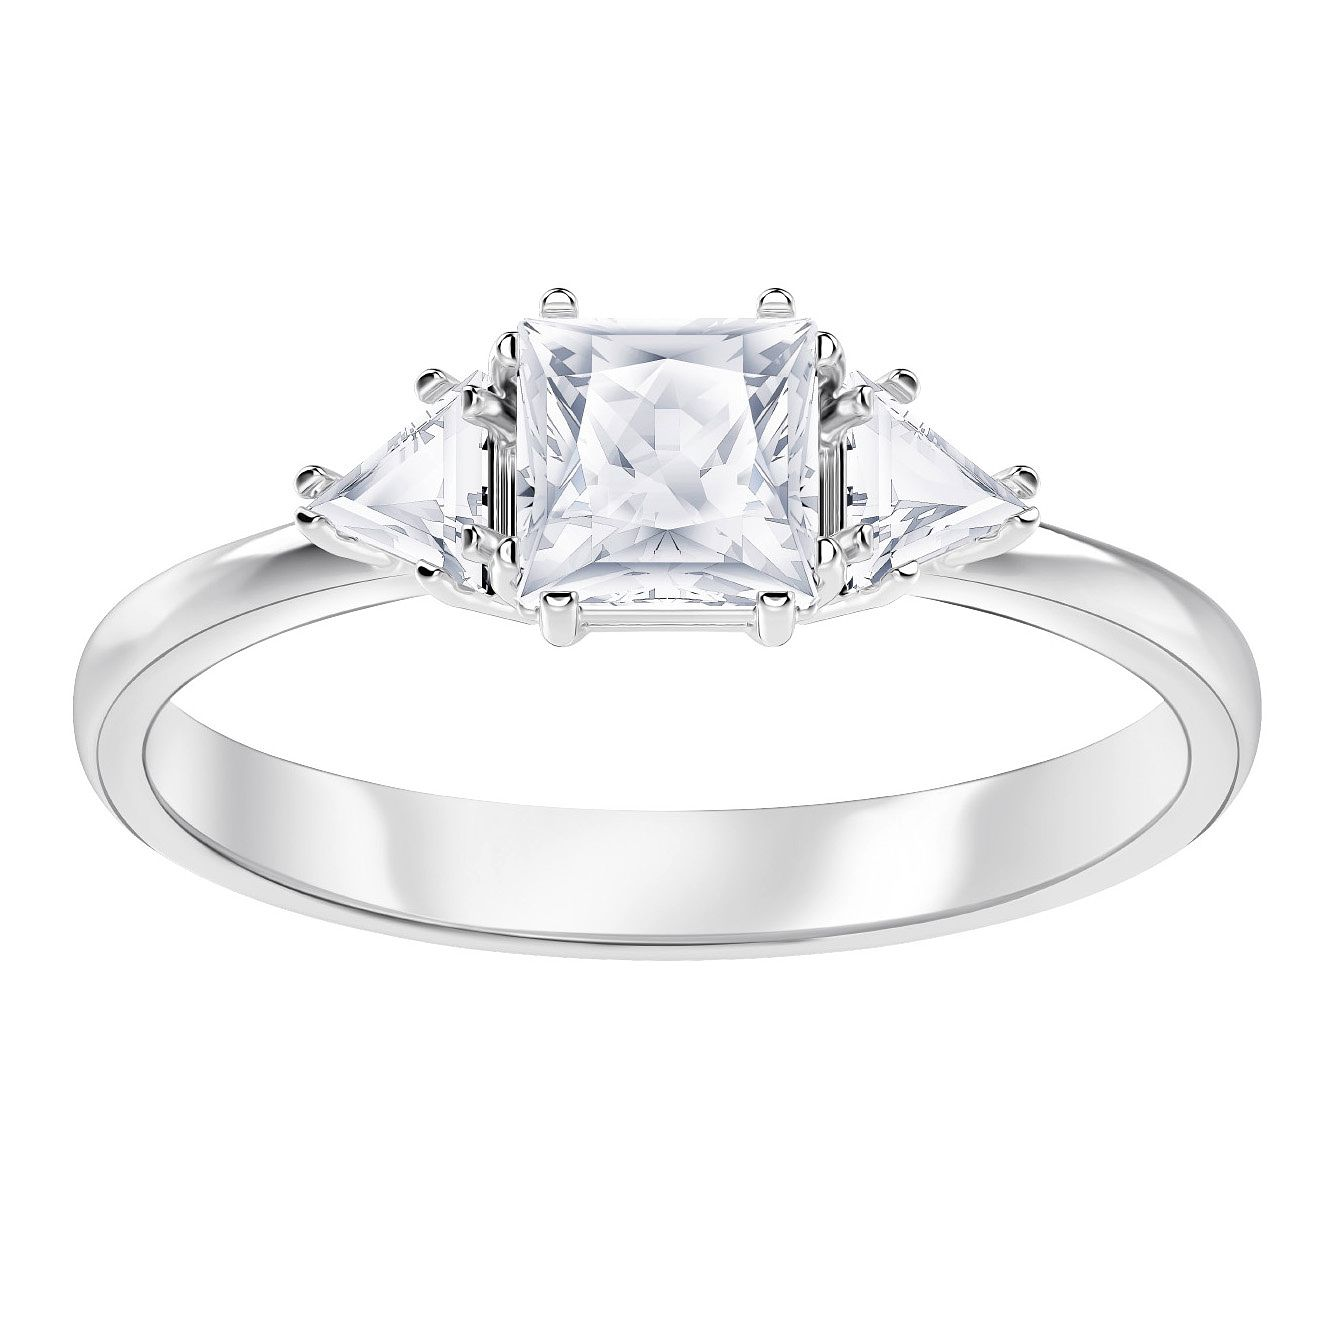 Swarvoski Ladies' Rhodium Plated Attract Ring - Product number 9808124